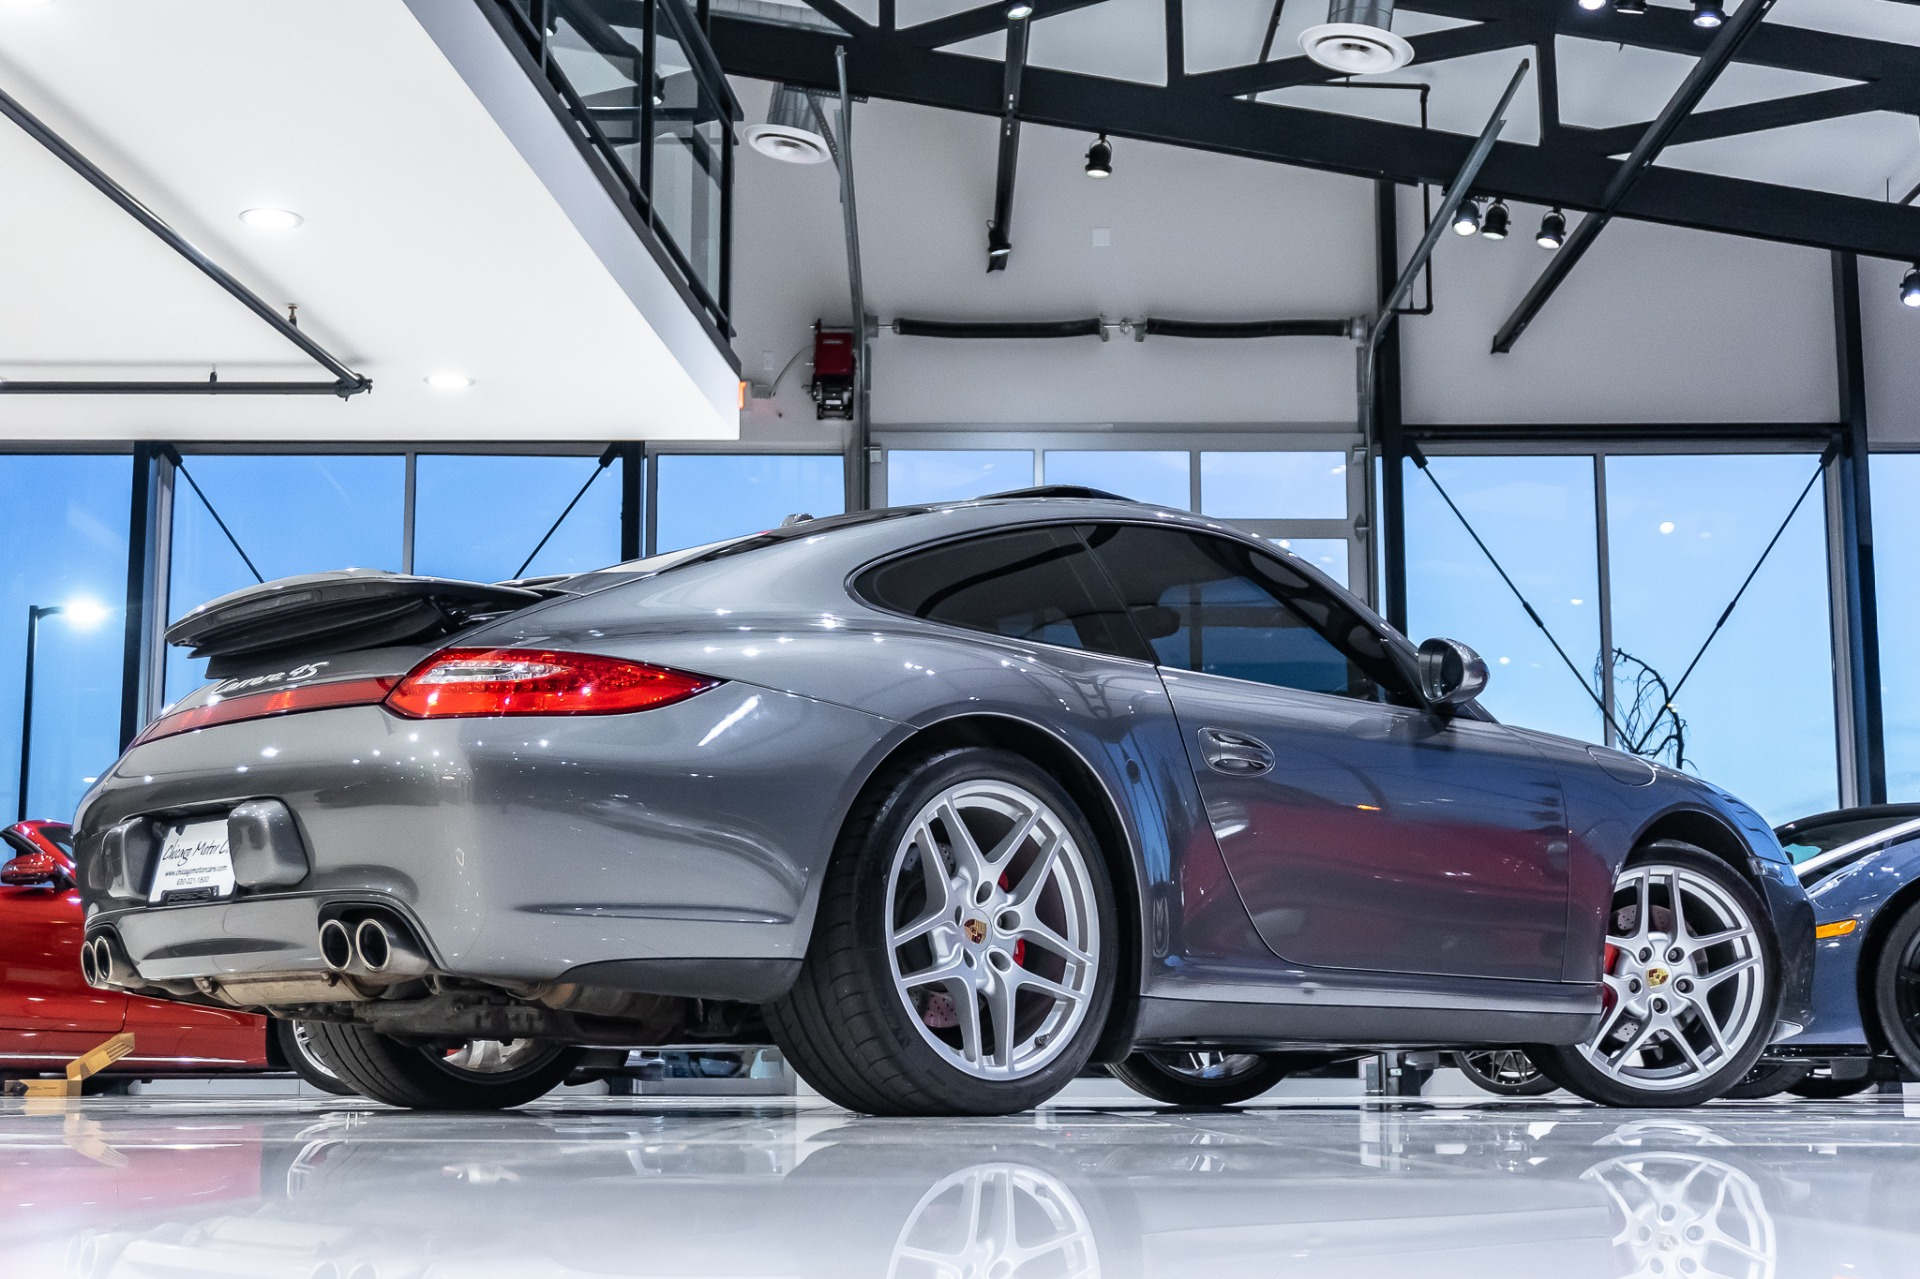 Used 2010 Porsche 911 Carrera 4s Coupe 113k Msrp For Sale Special Pricing Chicago Motor Cars Stock 16111